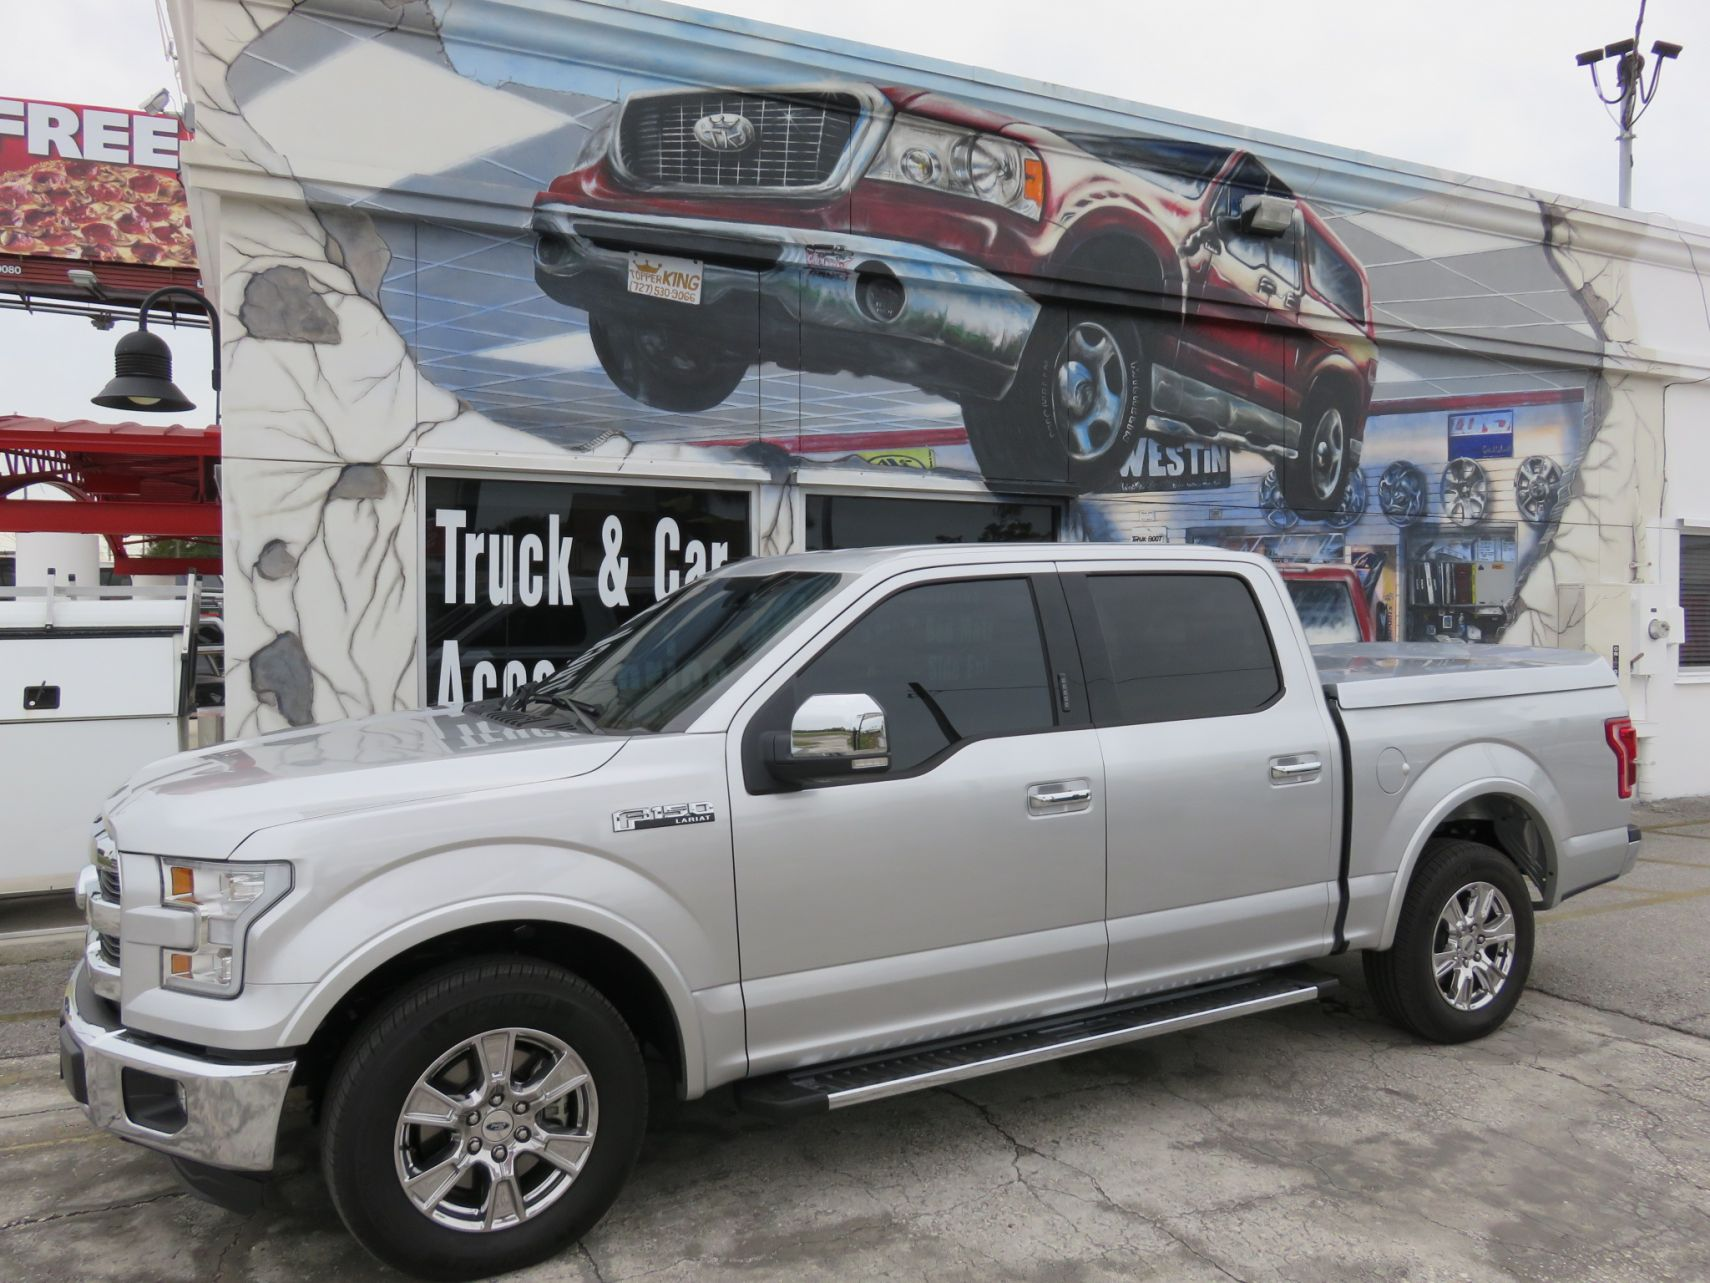 2016 Silver Ford F150 LEER 750 Sport, Nerf Bars, Tint by TopperKING in Brandon, FL 813-689-2449 or Clearwater, FL 727-530-9066. Call today to start!